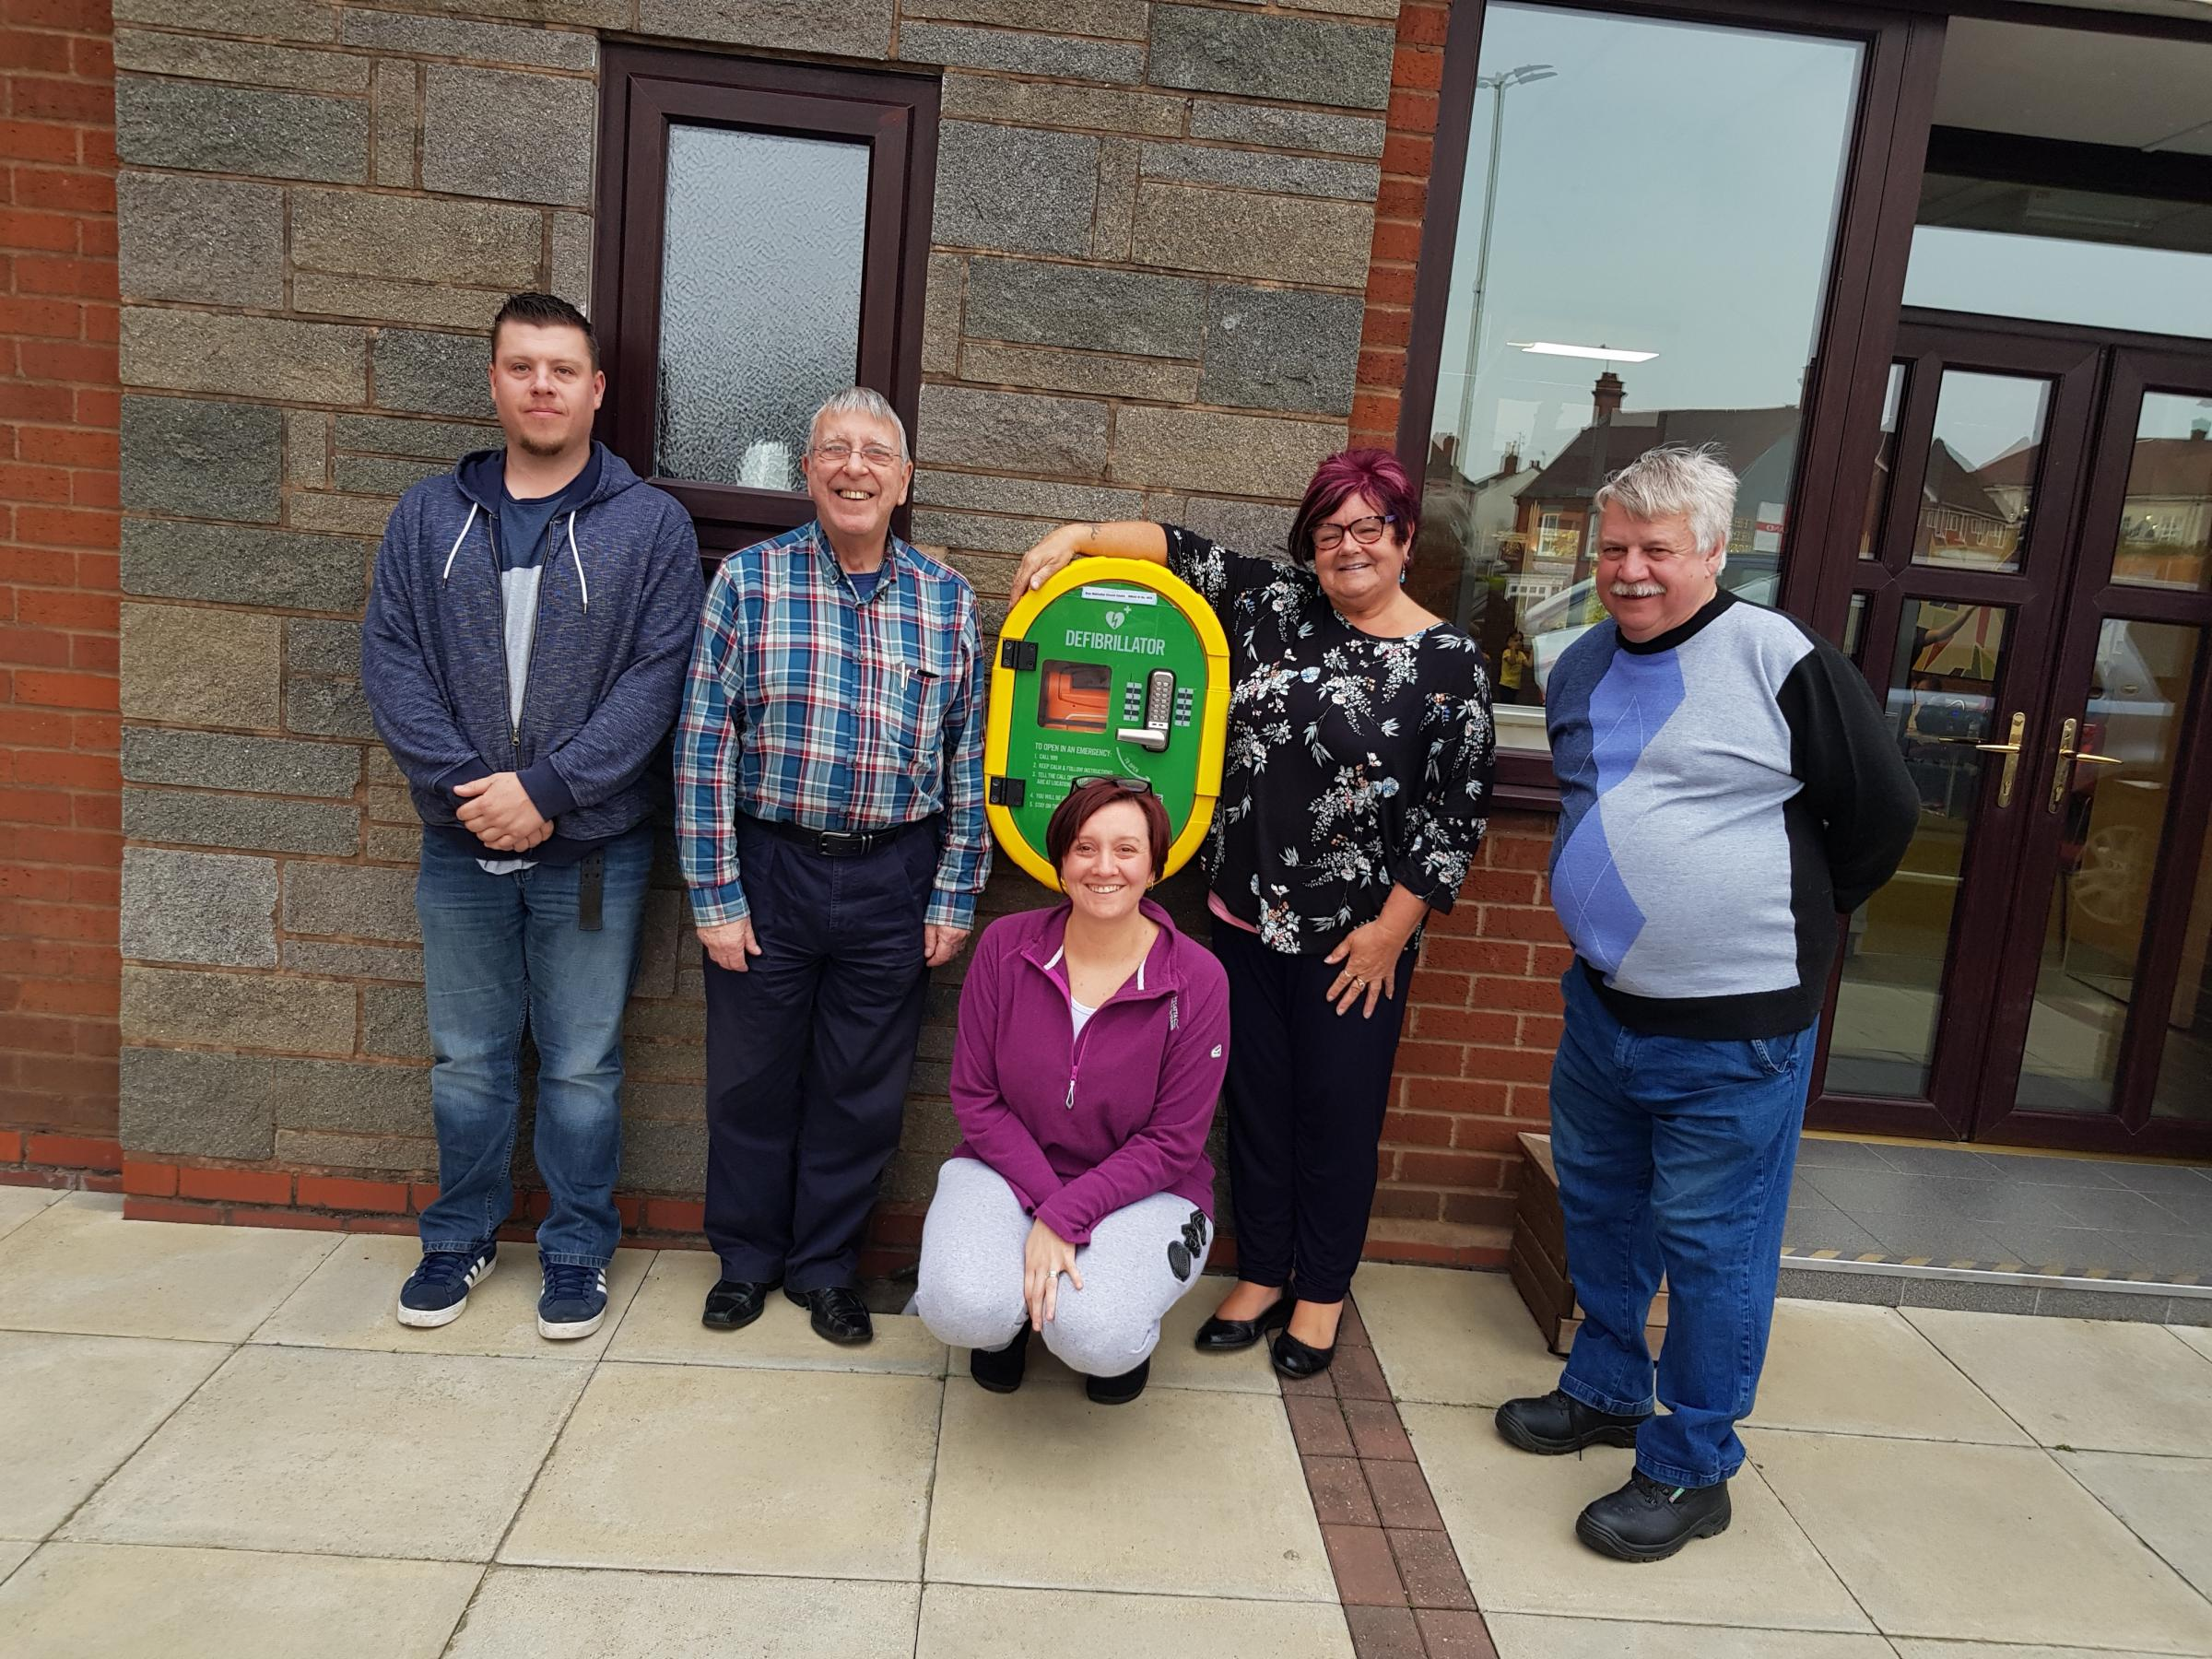 Left to right: John Jones, Bill Caldwell, Becki Edwards, Christine Bate and Paul Greenaway, members of the Gornal Together committee.